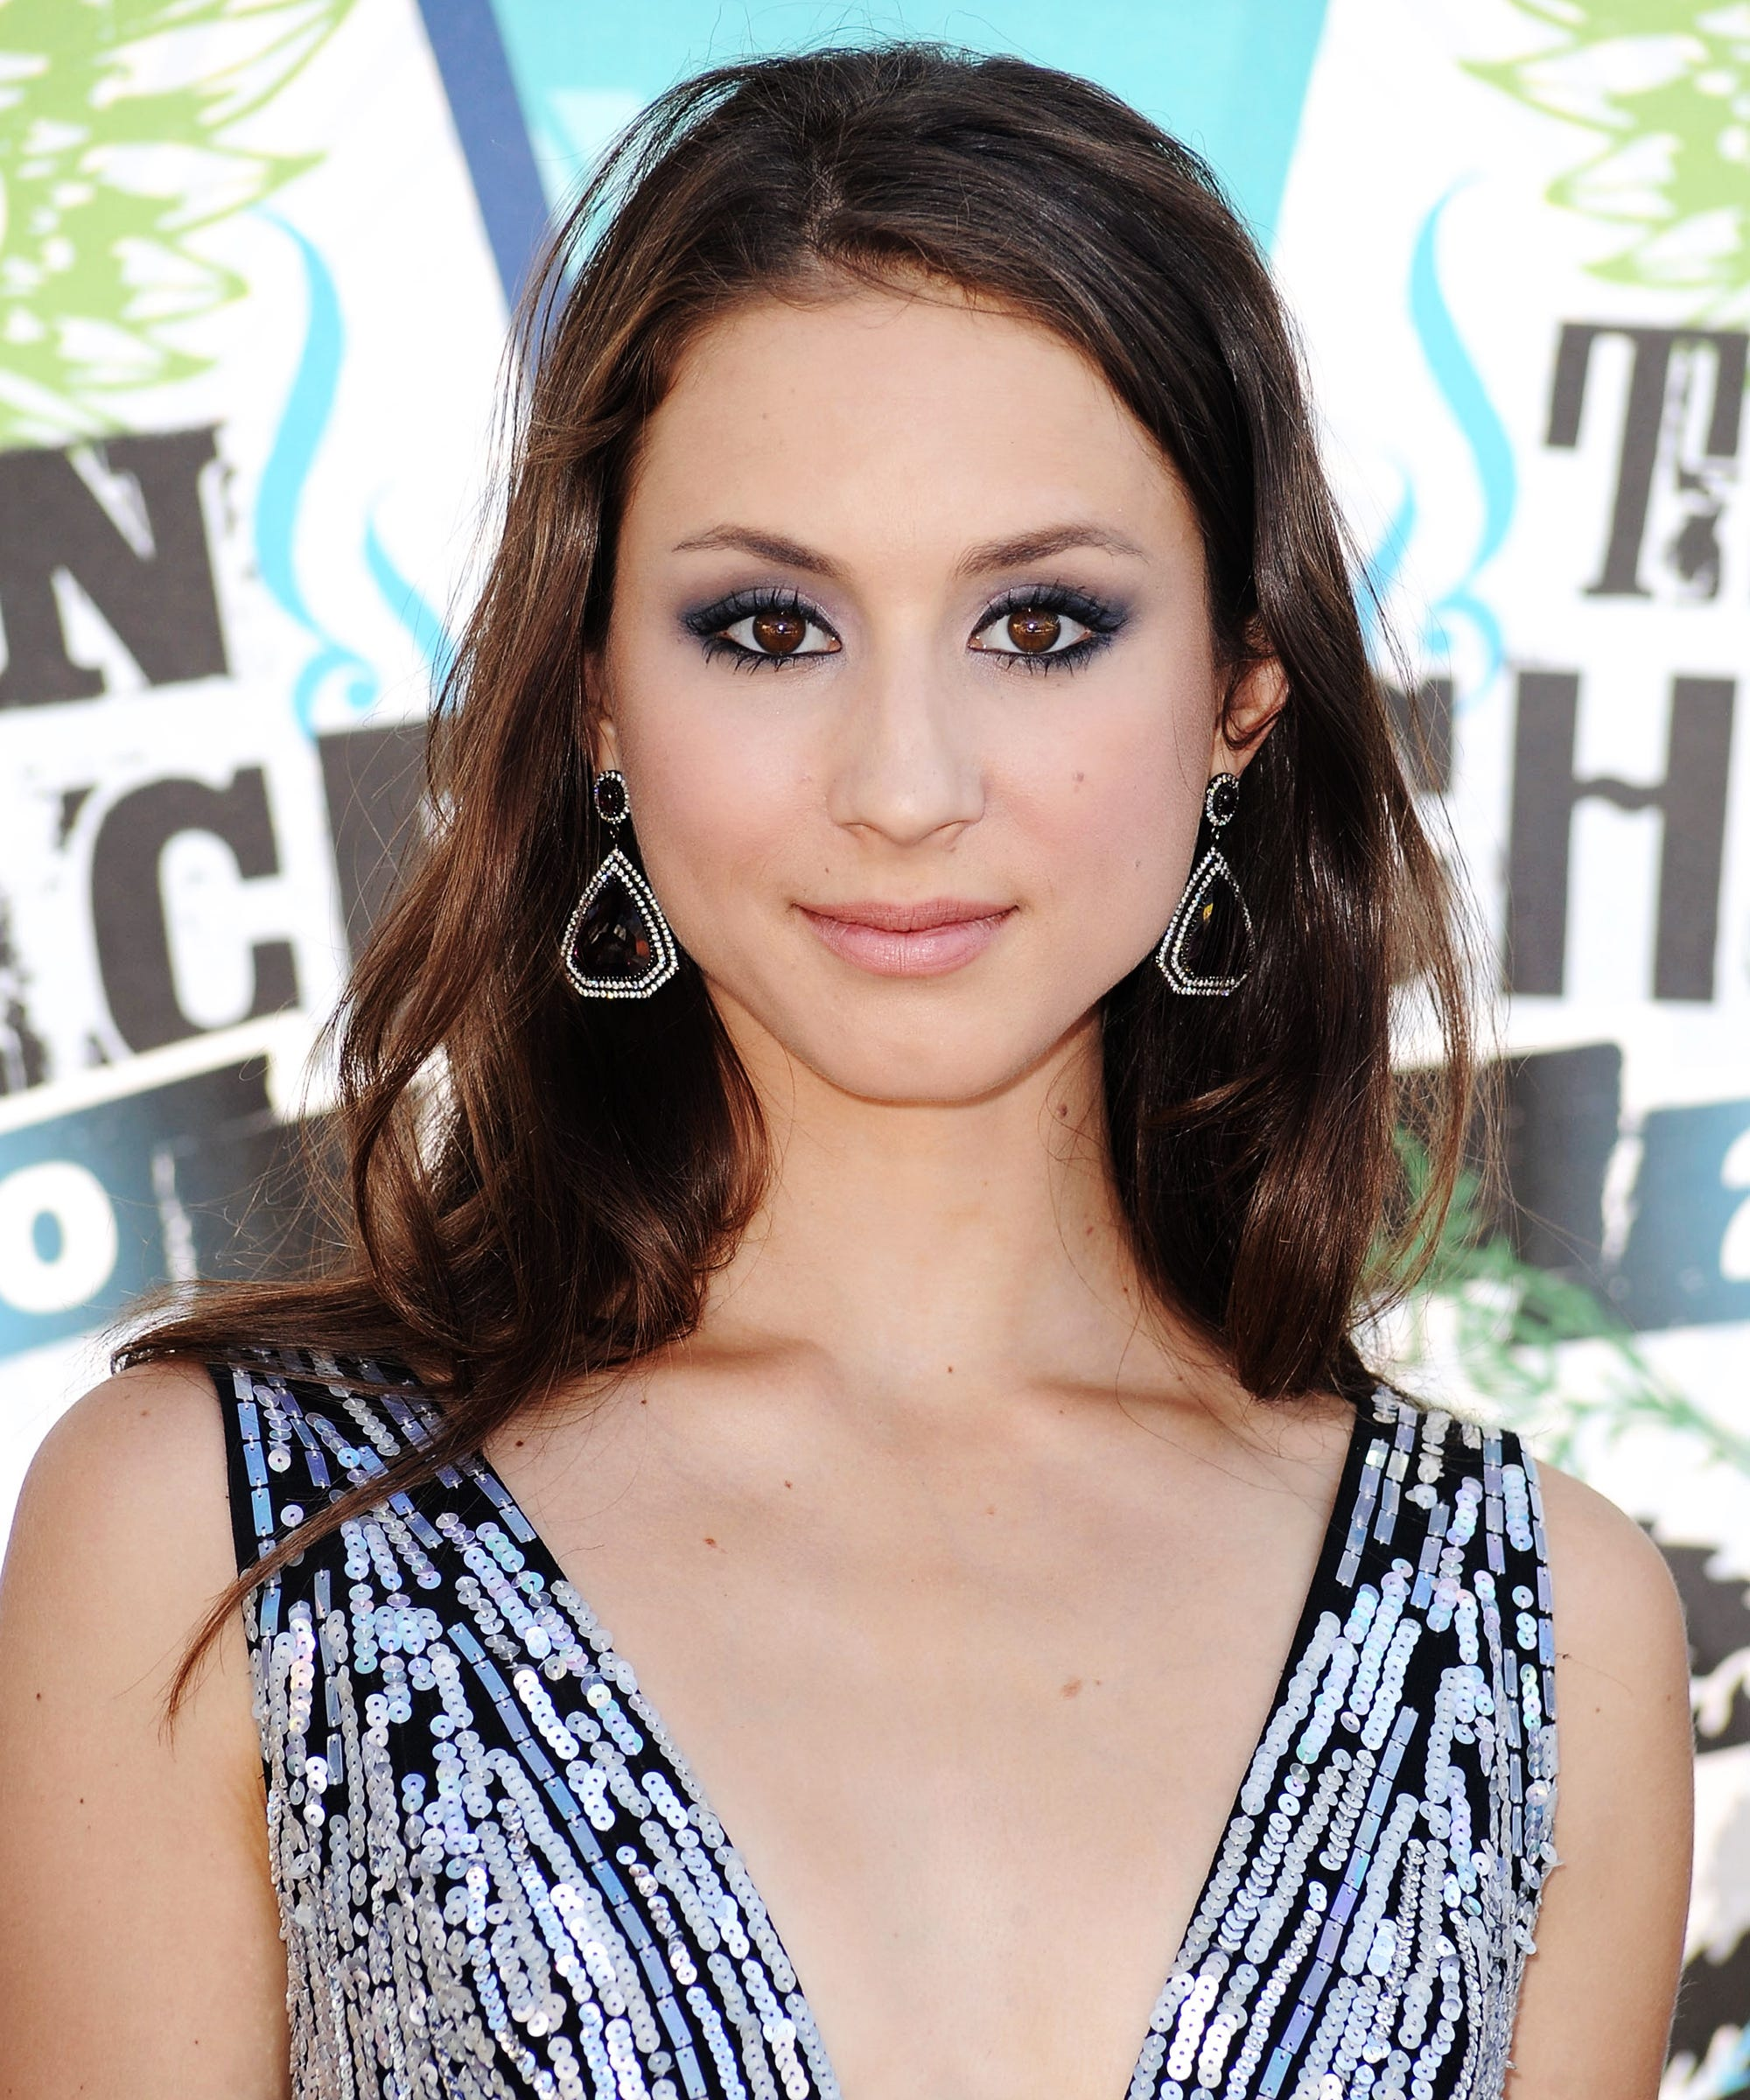 Summer Buzz Cuts Best Celebrity Shaved Heads further Jennifer Walcott Gallery as well Christina Aguilera Unrecognizable No Makeup On besides Nsync besides Things That Guys Wear That Girls Love. on justin timberlake you got it on